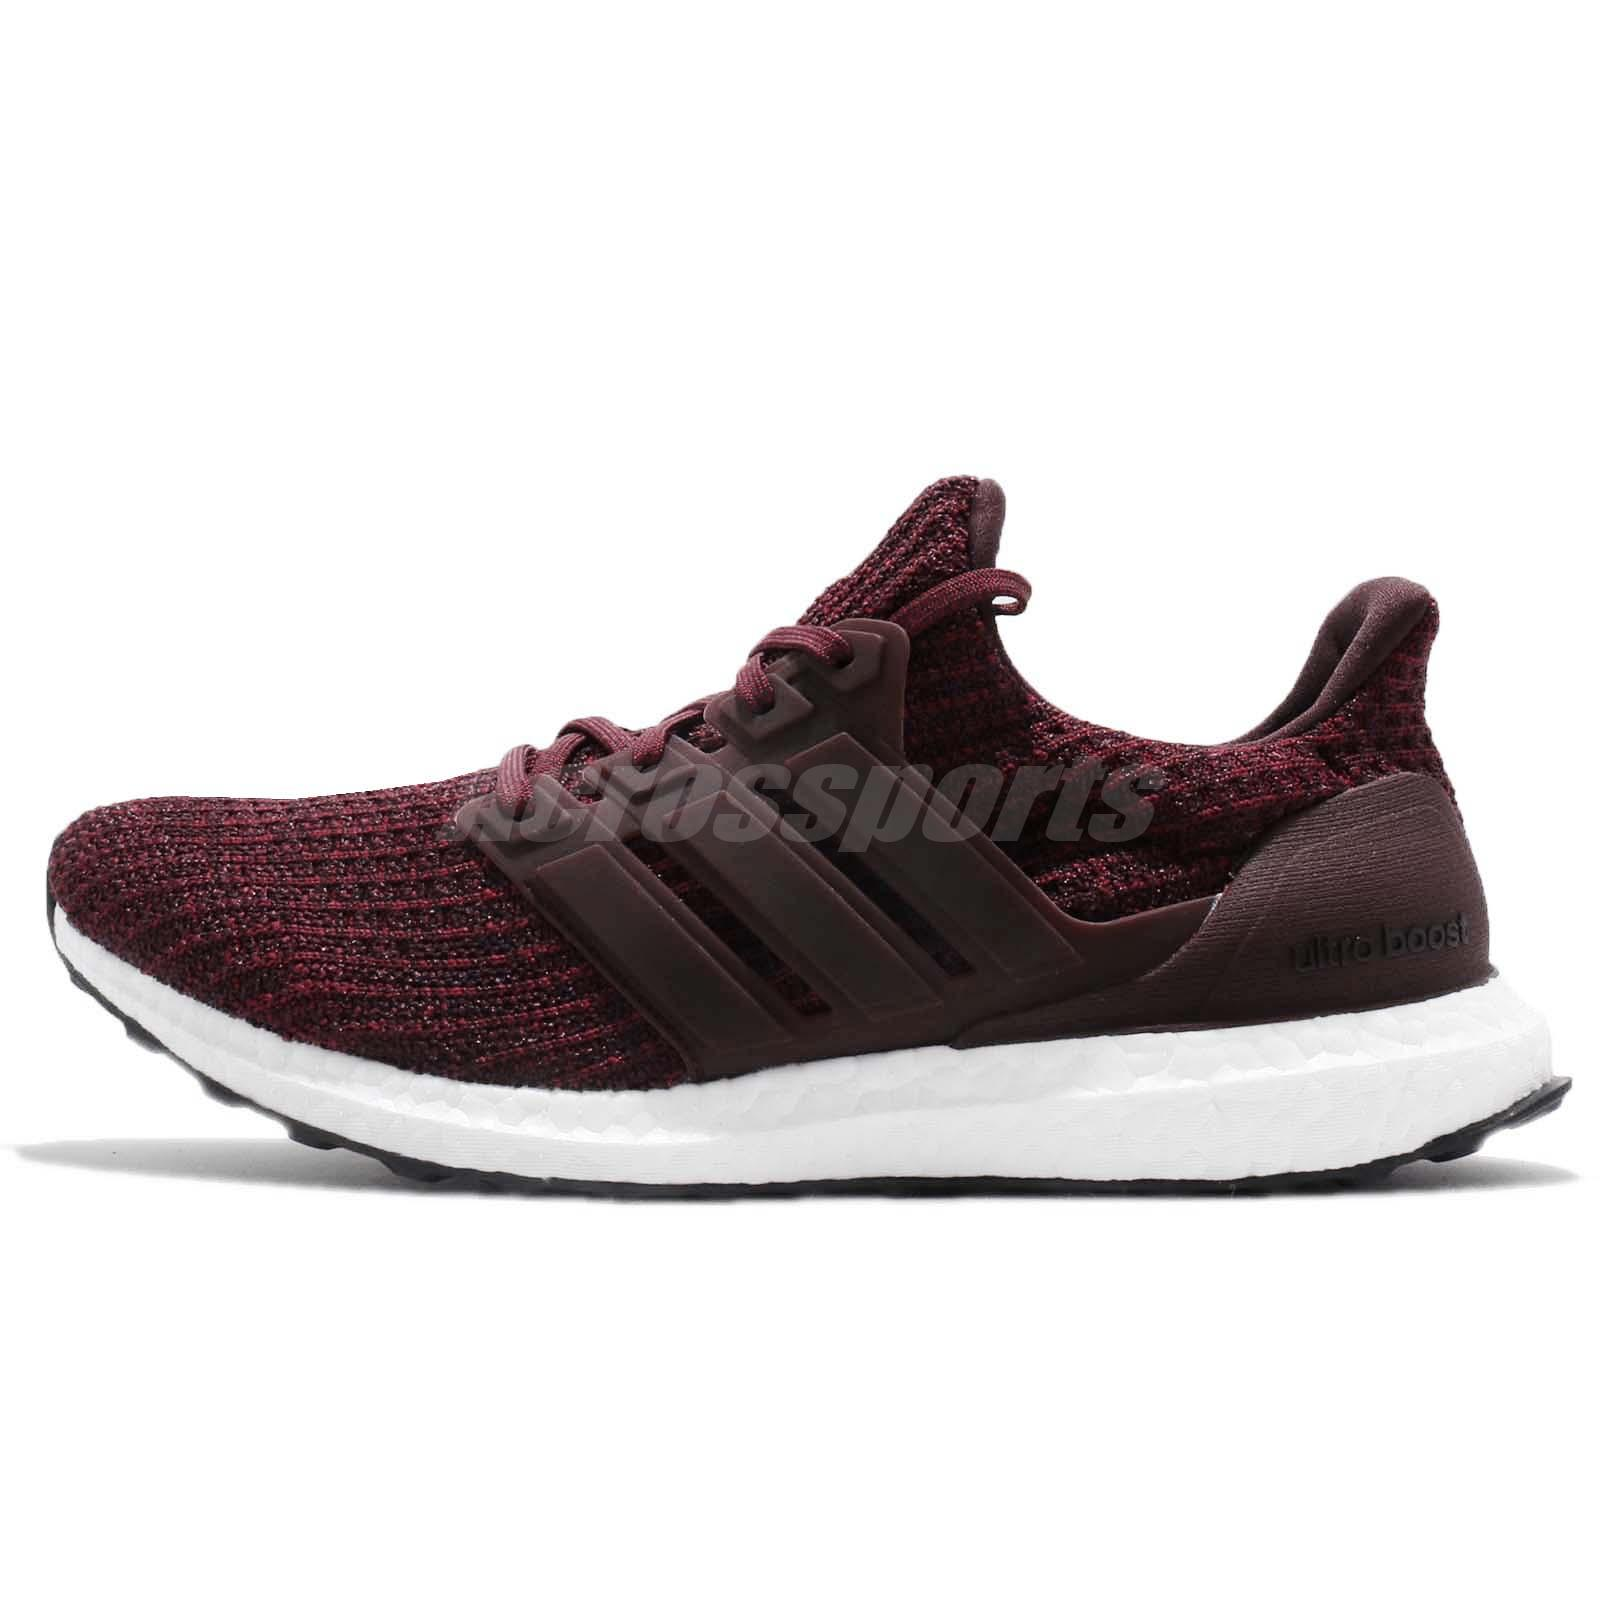 ba928a1c60f adidas UltraBOOST 4.0 Maroon Night Red White Men Running Shoes Sneakers  CM8115